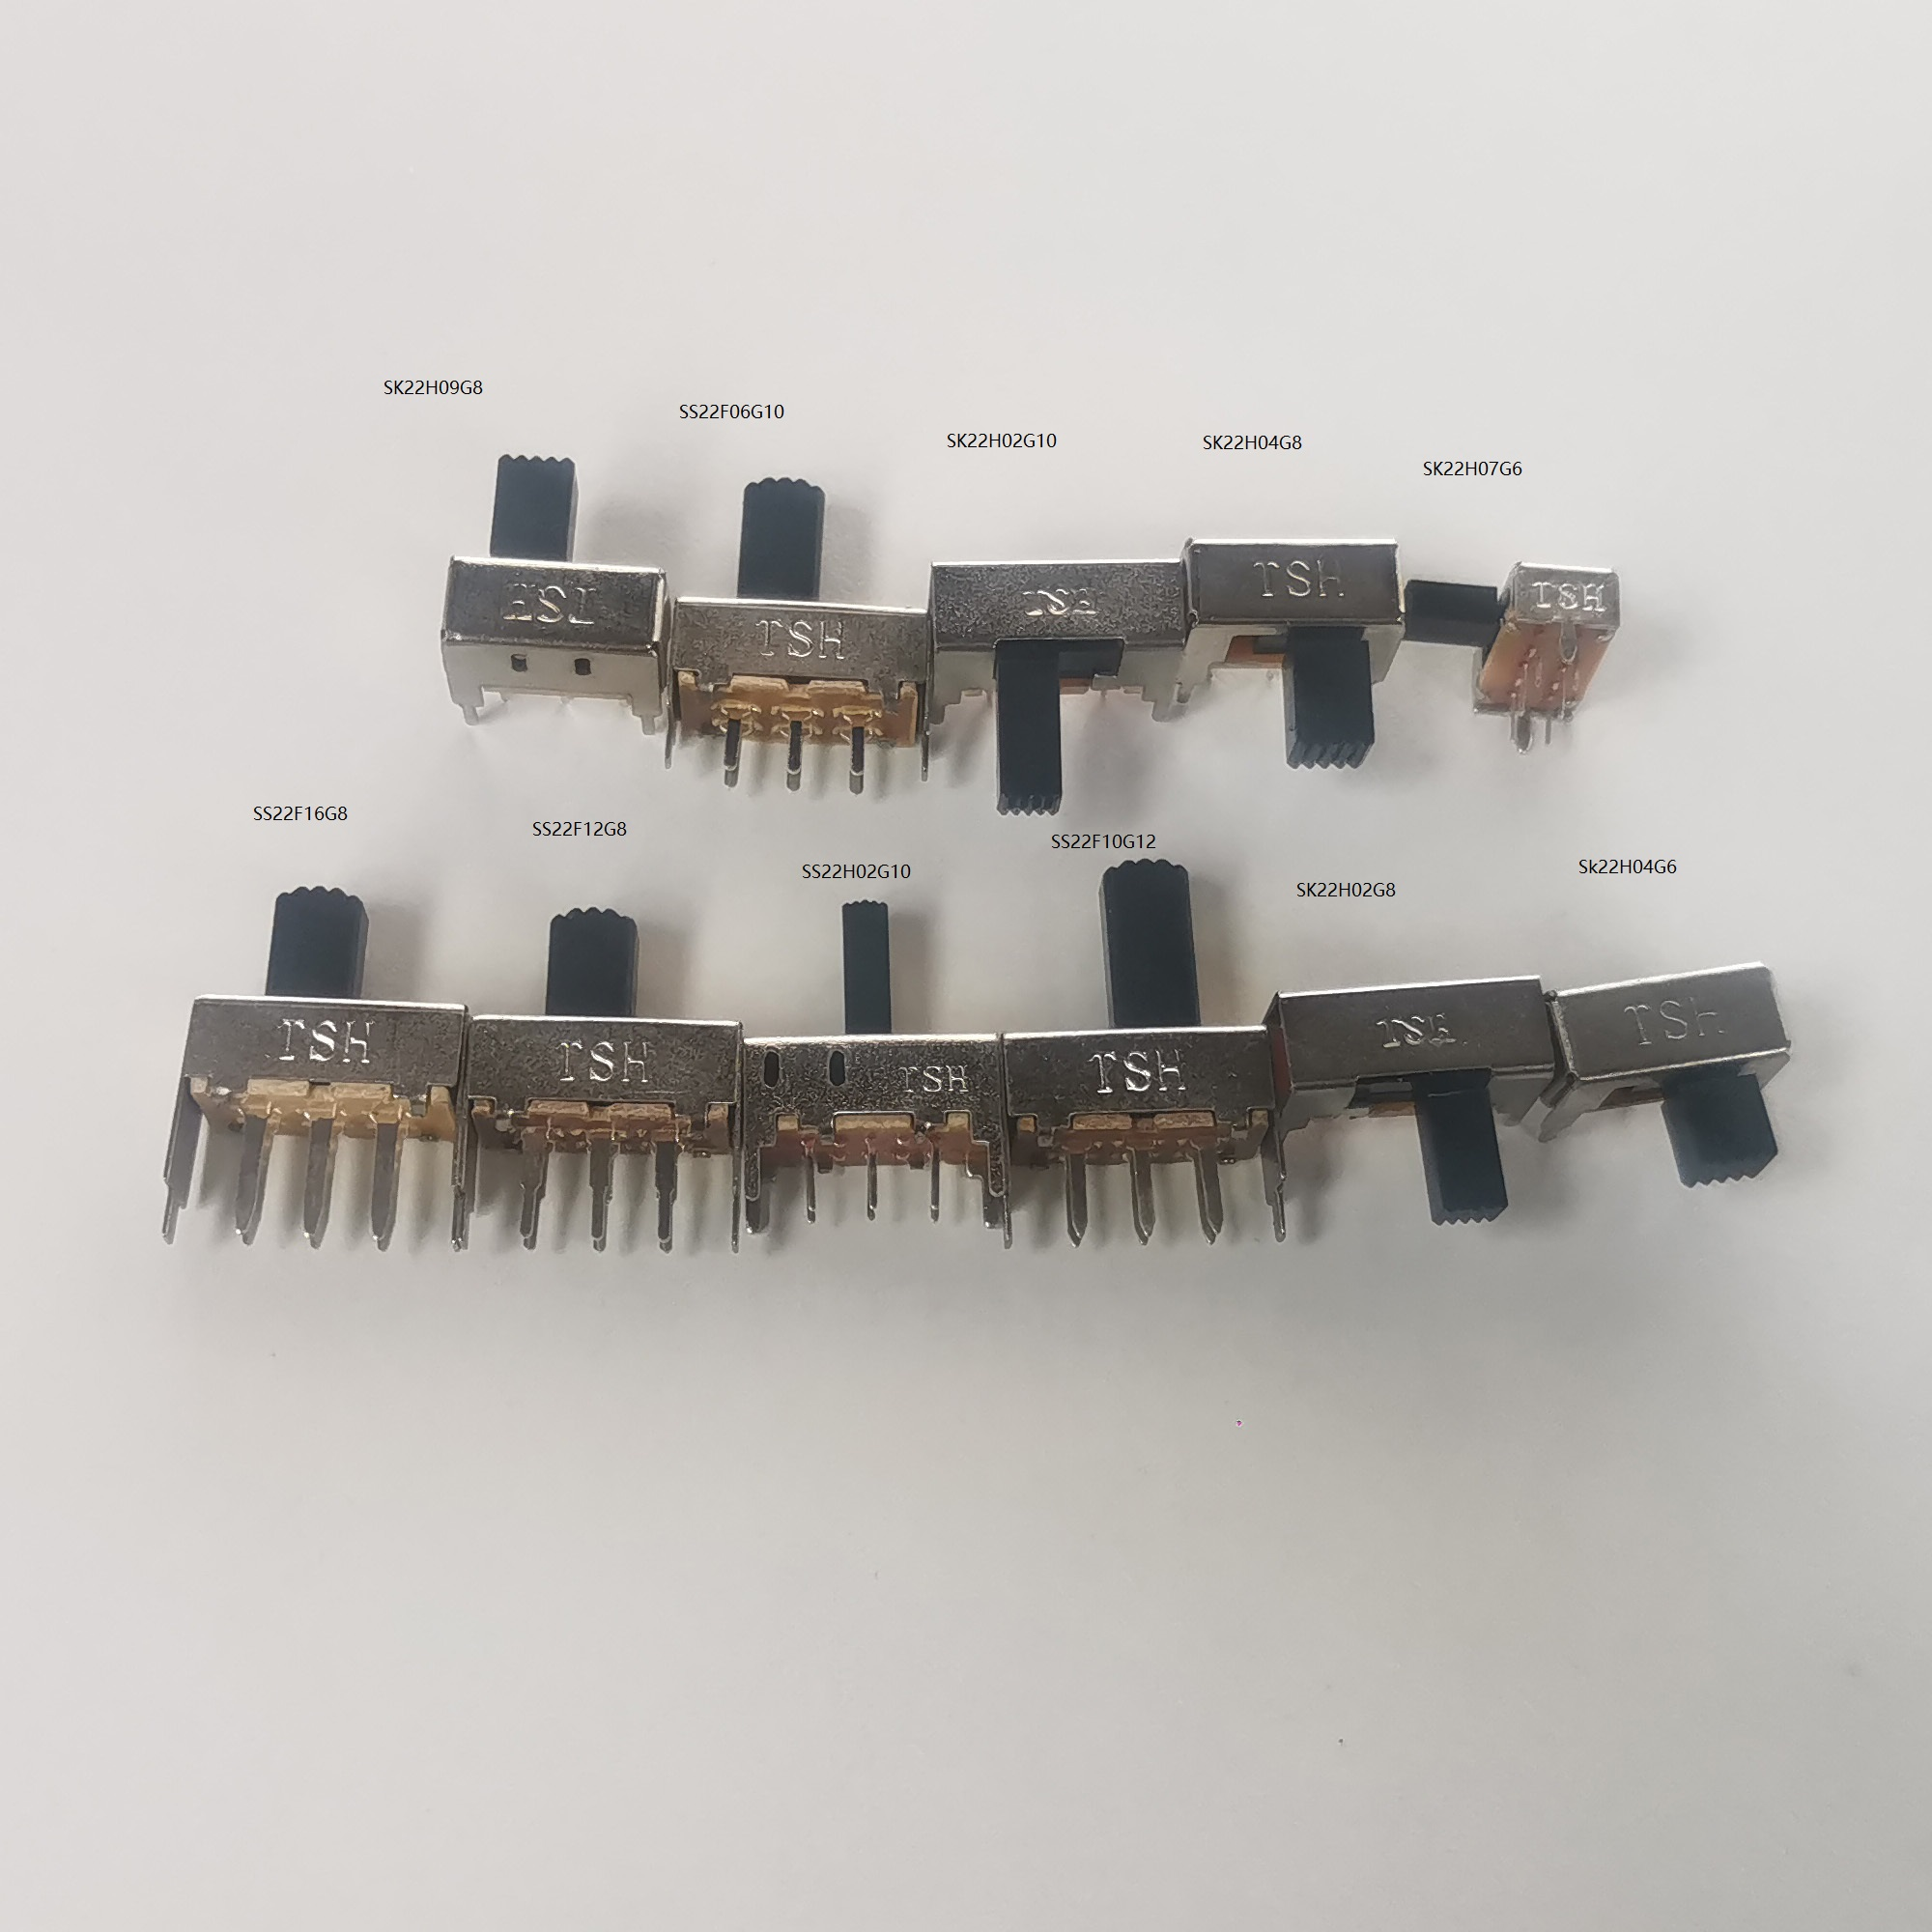 10PCS/Lot 6 Pin toggle switch Slide Switch Horizontal switch lever switch SK22H02G8 2P2T Ex-factor price